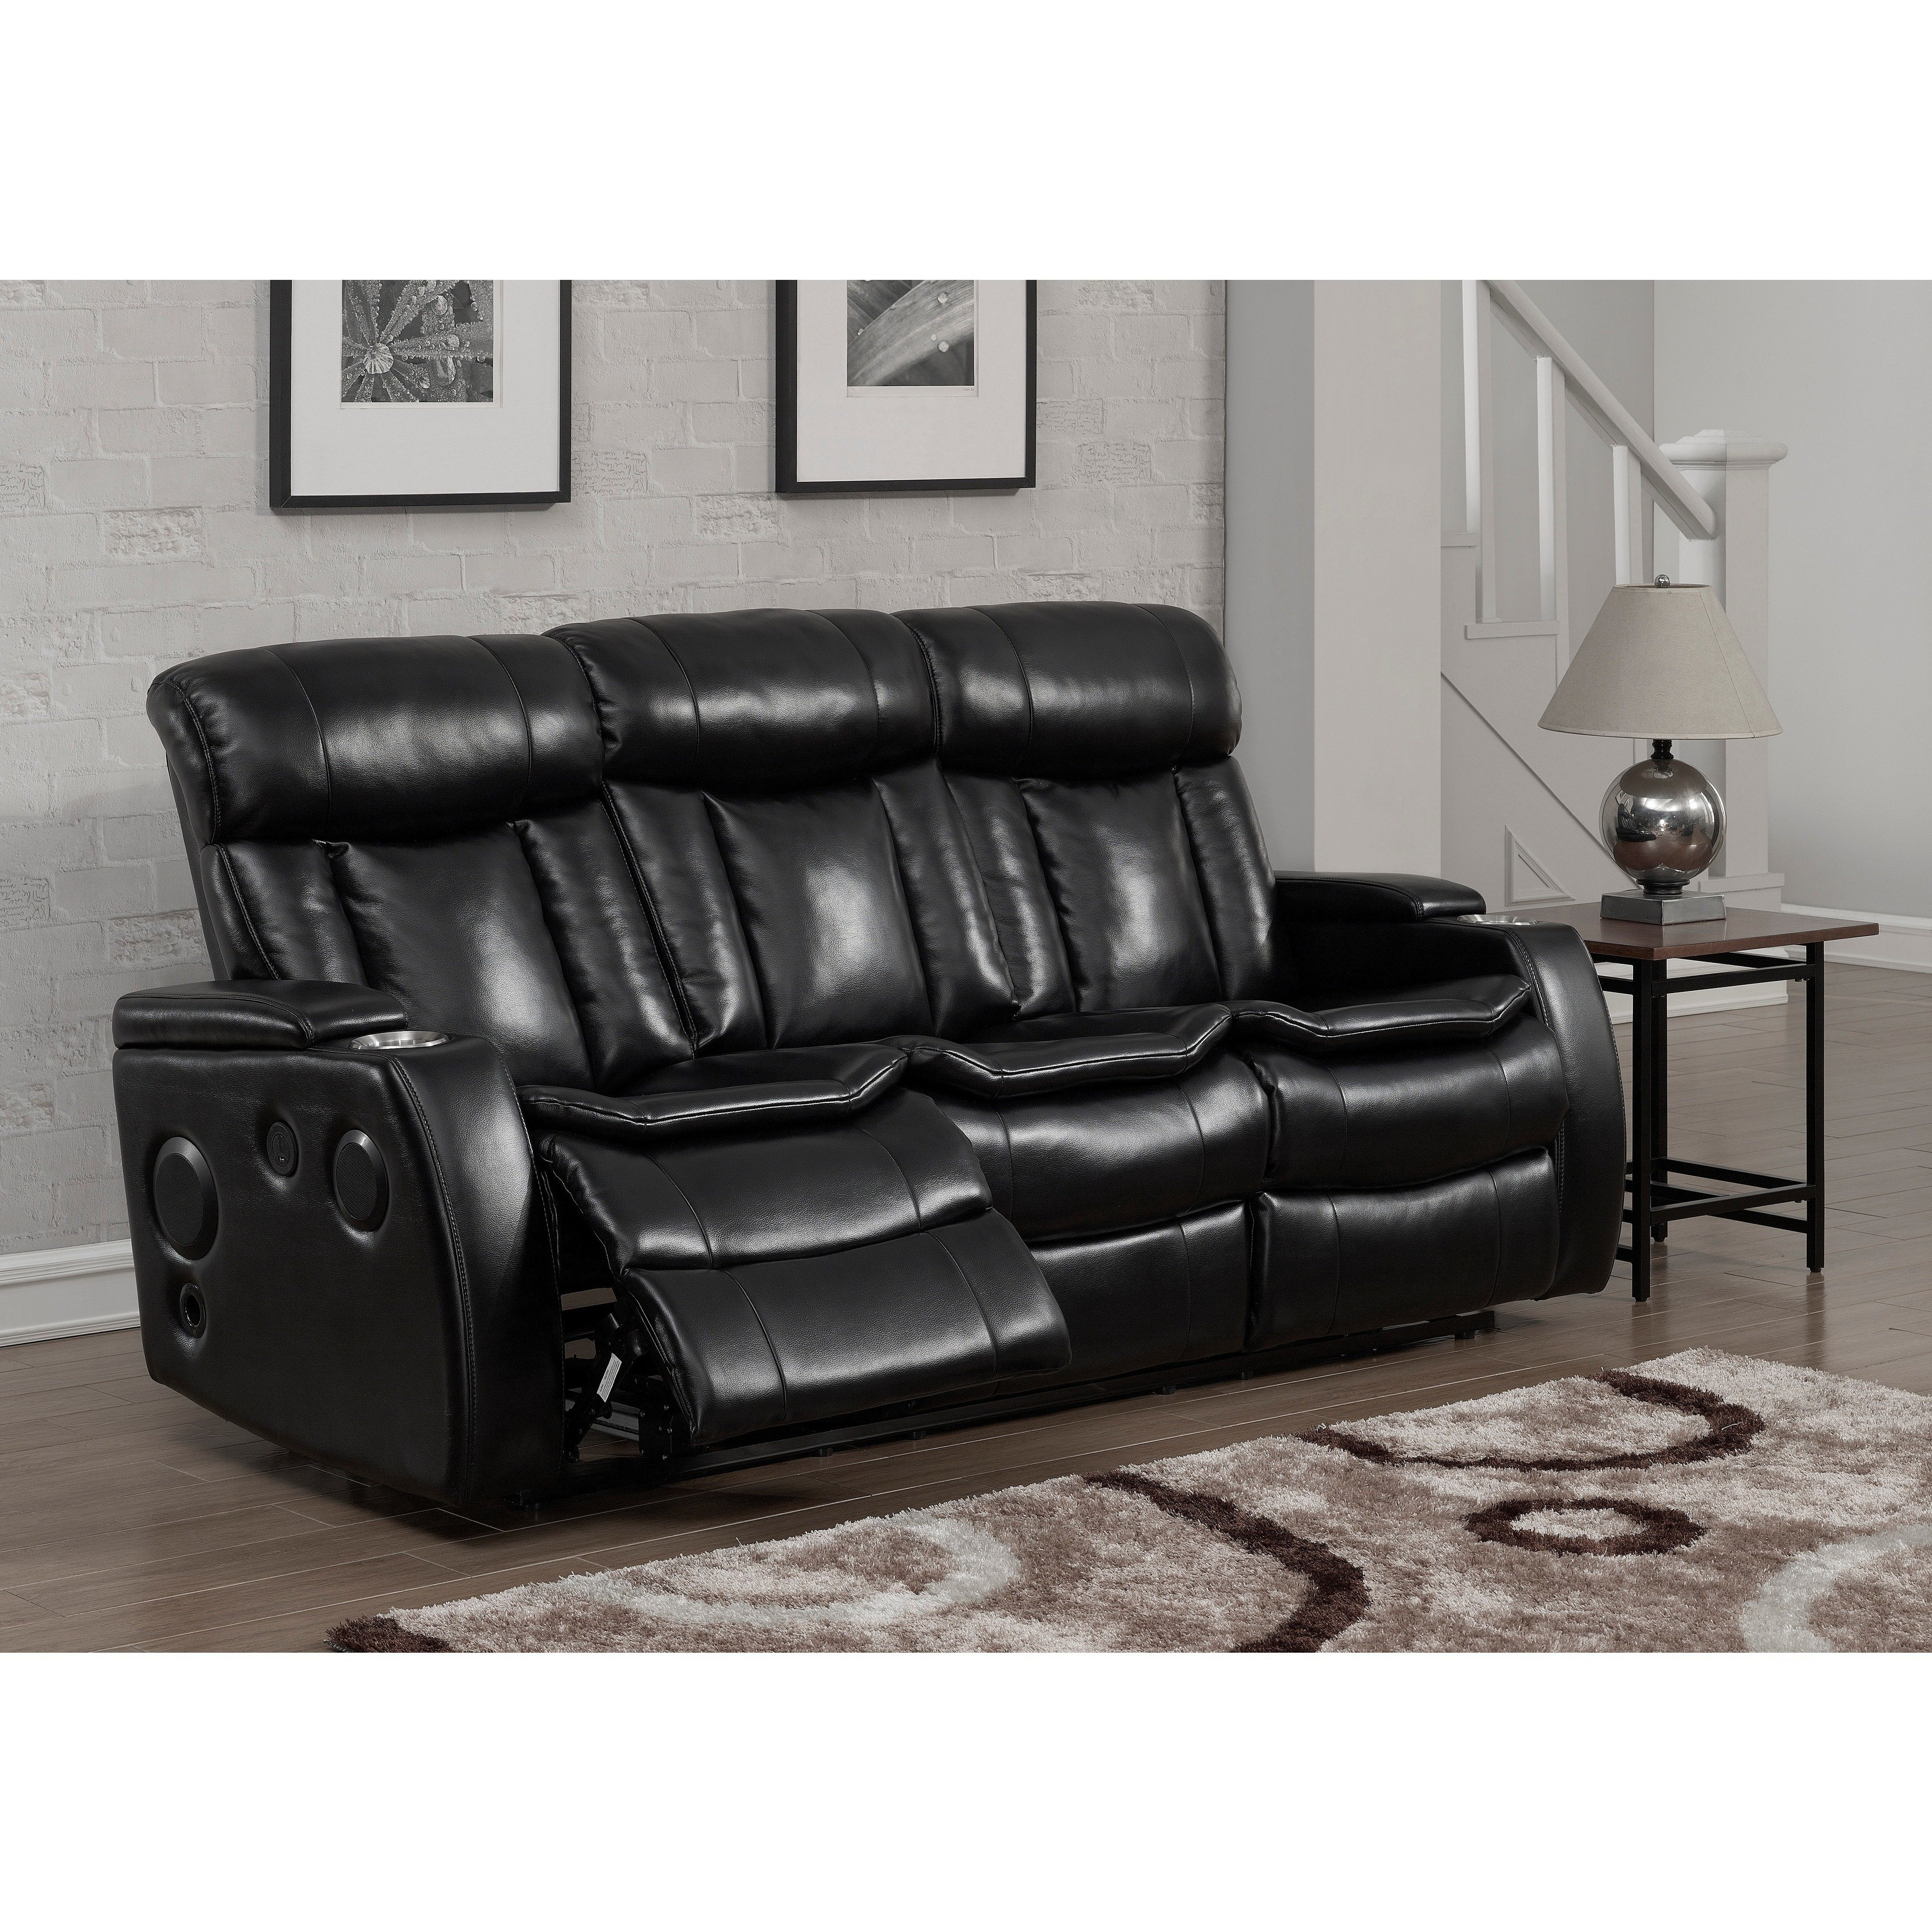 Delano Power Reclining Sofa With Usb | Baci Living Room Regarding Delano Smoke 3 Piece Sectionals (Image 8 of 25)